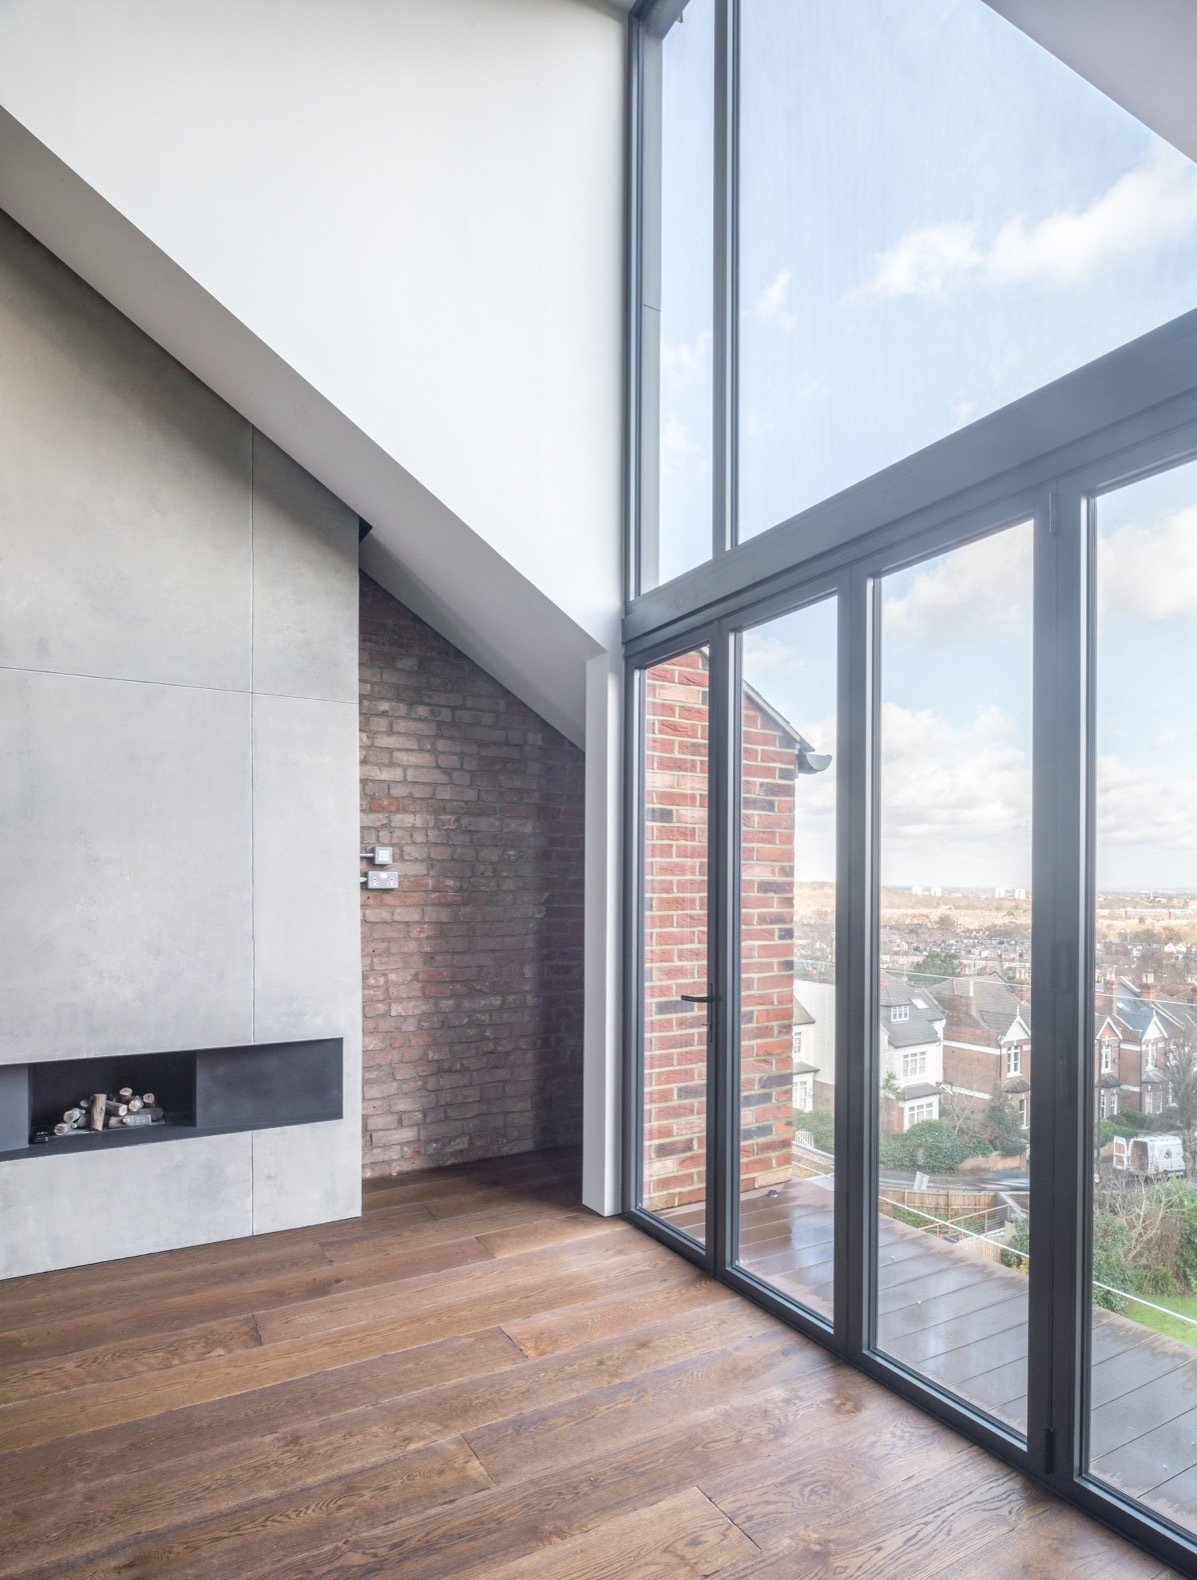 Windows, Sliding, and Metal The architects installed Luxal aluminum glazing, which allows the interior space to be flooded with natural light. In addition, the floor-to-ceiling windows are perfectly positioned to frame the breathtaking views over North London and Alexandra Palace.    Best Windows Sliding Metal Photos from A Shabby Attic Becomes a Chic, Cathedral-Style Living Space